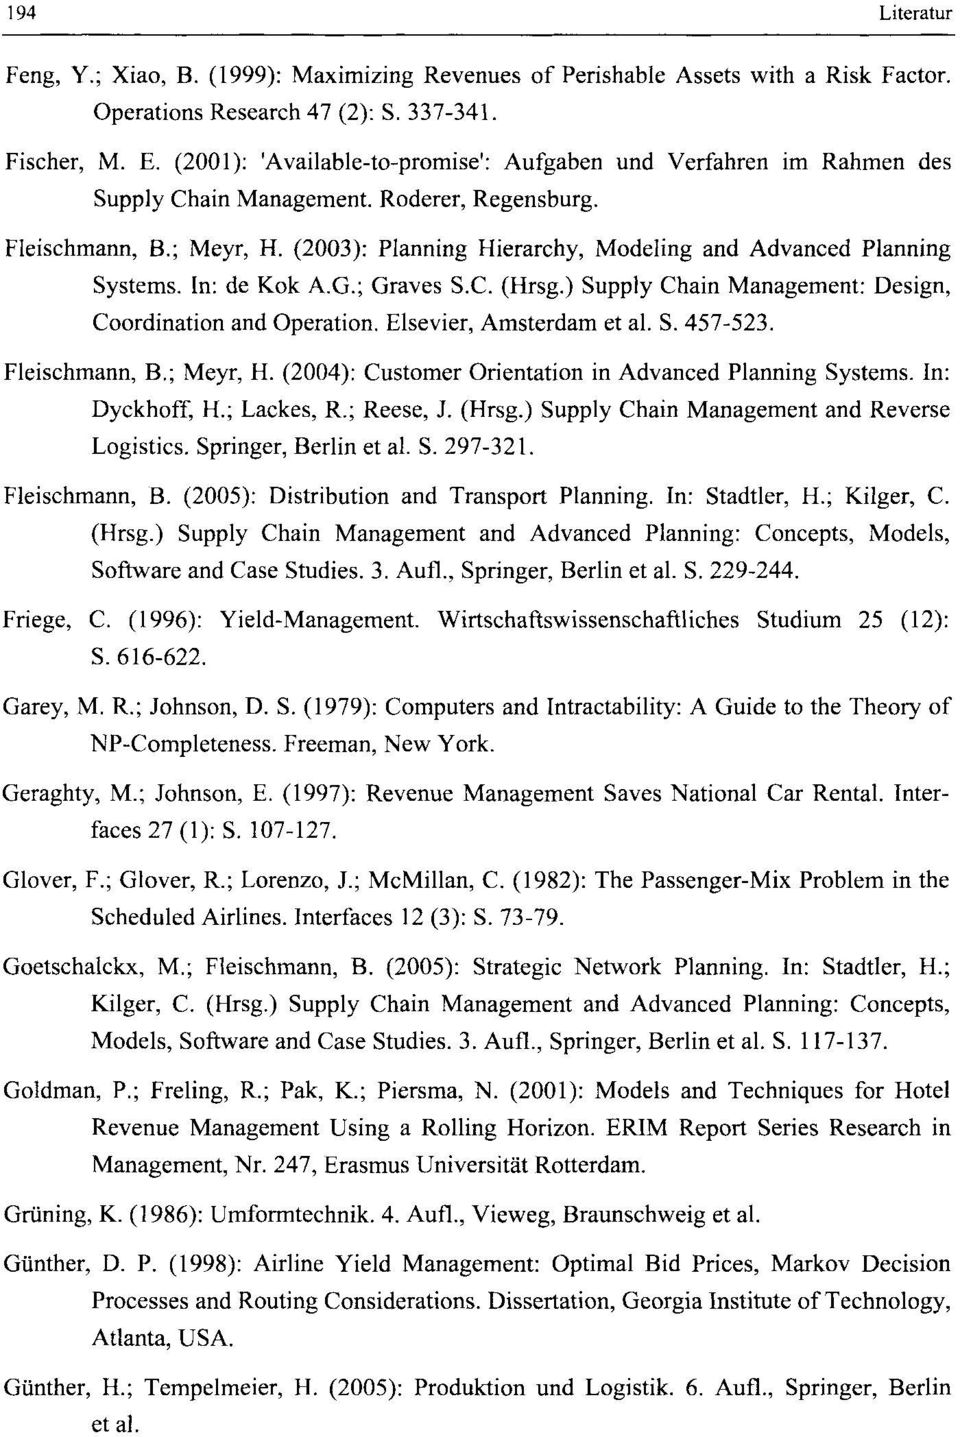 (2003): Planning Hierarchy, Modeling and Advanced Planning Systems. In: de Kok A.G.; Graves S.C. (Hrsg.) Supply Chain Management: Design, Coordination and Operation. Elsevier, Amsterdam et al. S. 457-523.